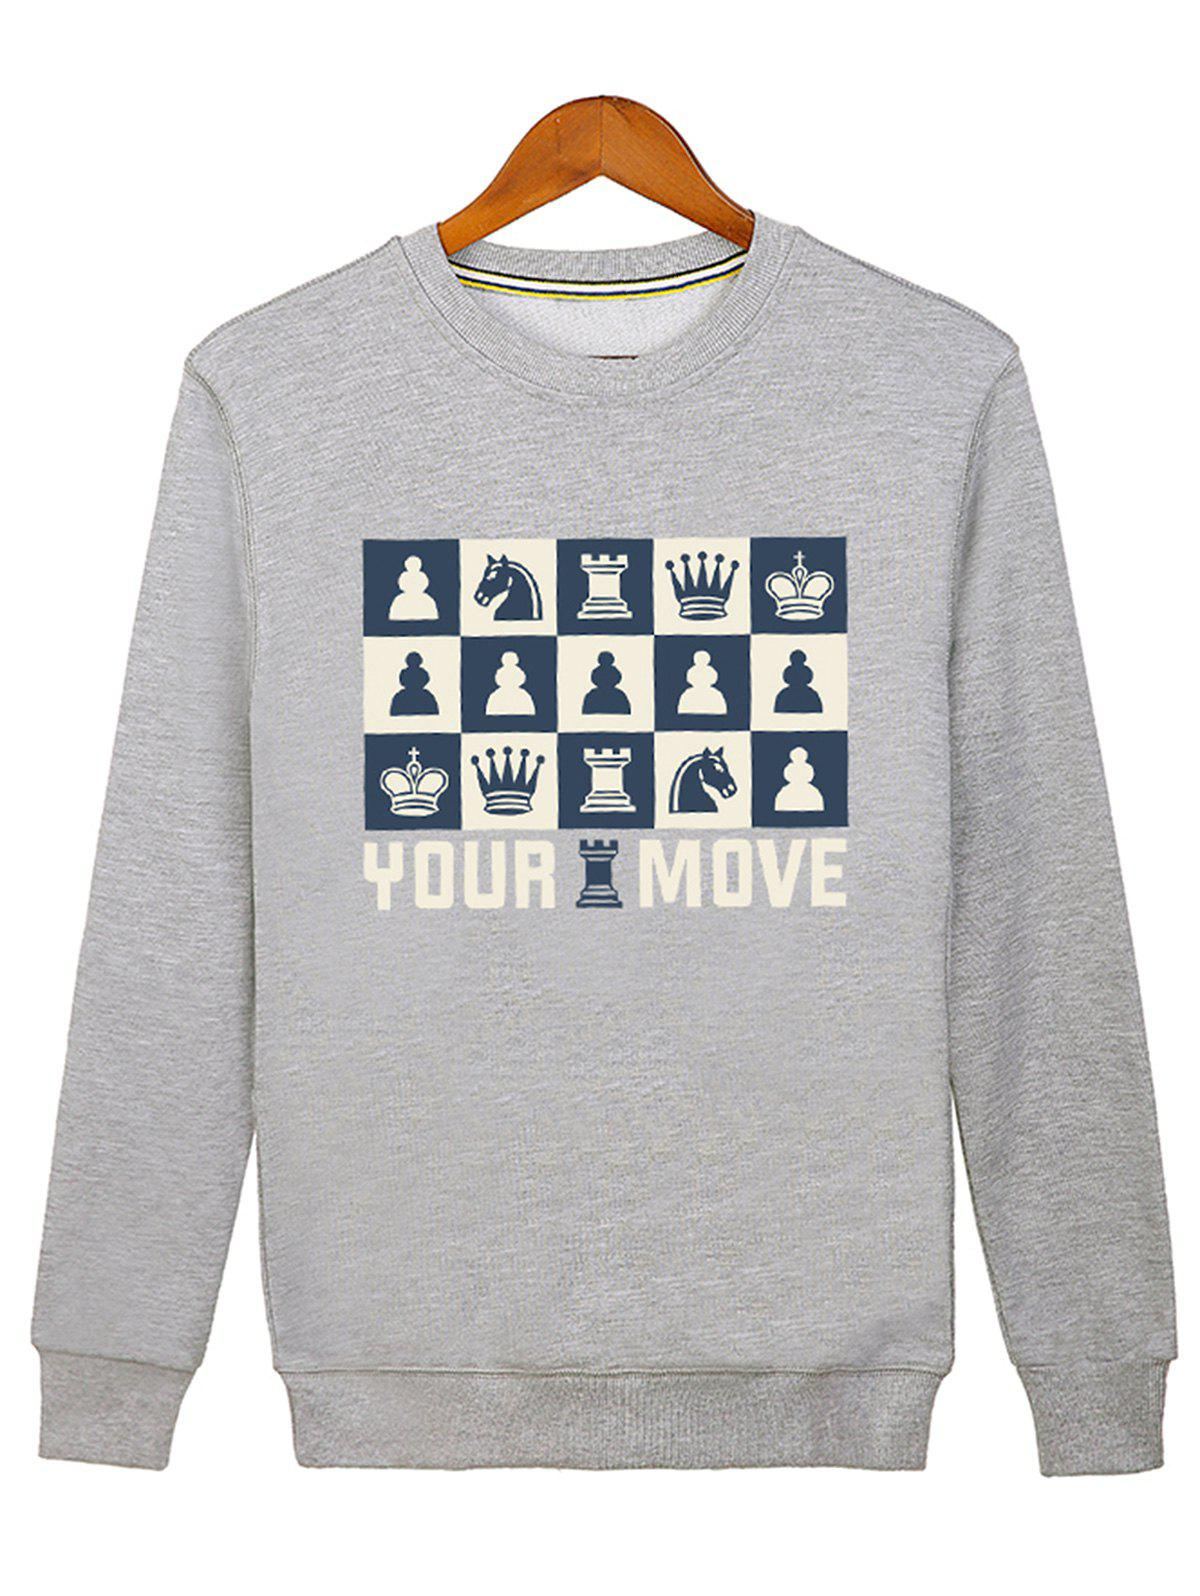 Unique Horse Crown Print Graphic Sweatshirt